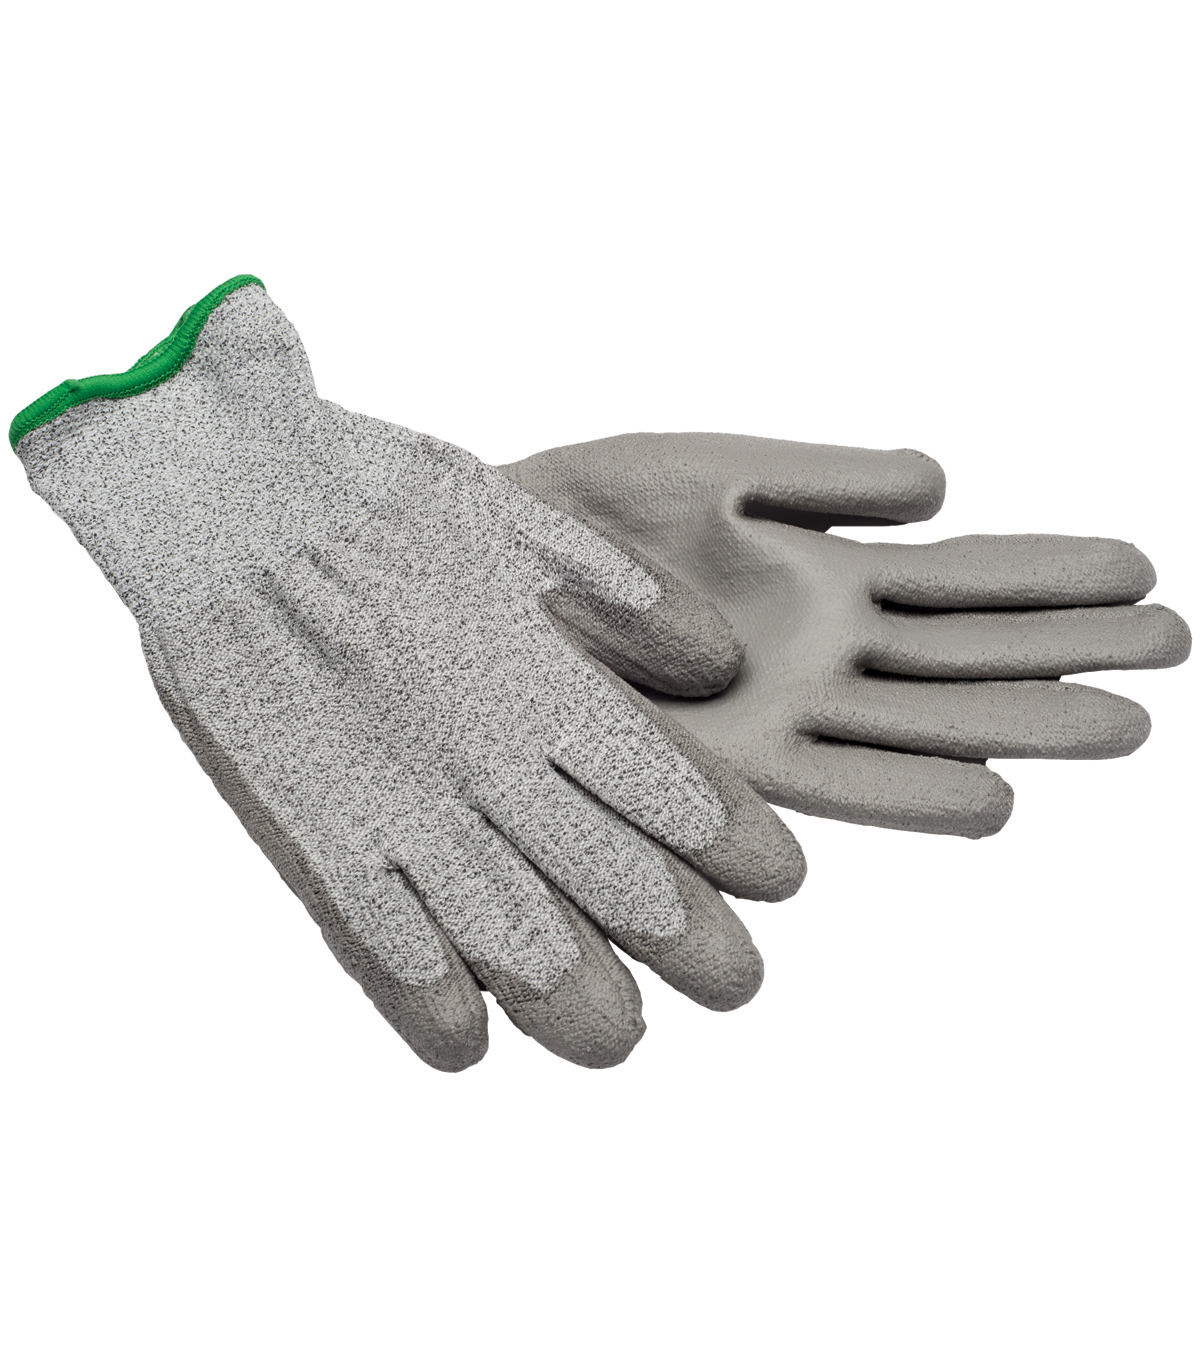 Metal Working Gloves